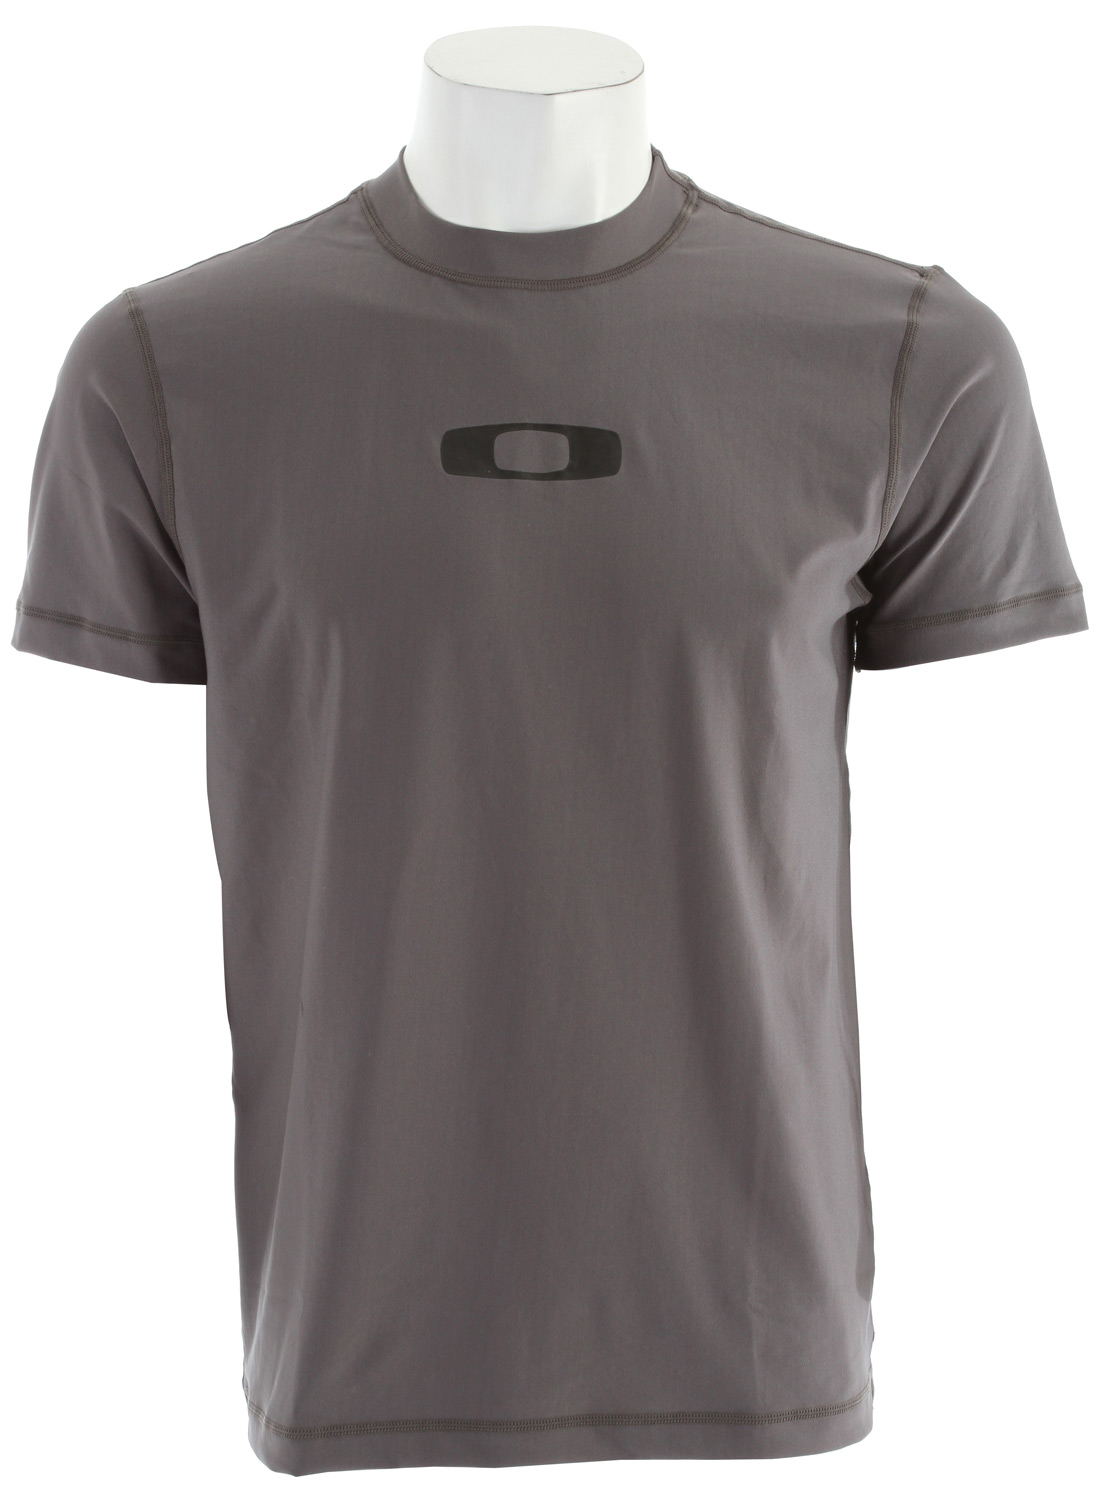 Short sleeve mesh rashguard with flatlock stitching and front and back logo screenprint. T shirt FitKey Features of the Oakley Square O Rashguard: 88% Polyester, 12% Spandex - $24.95